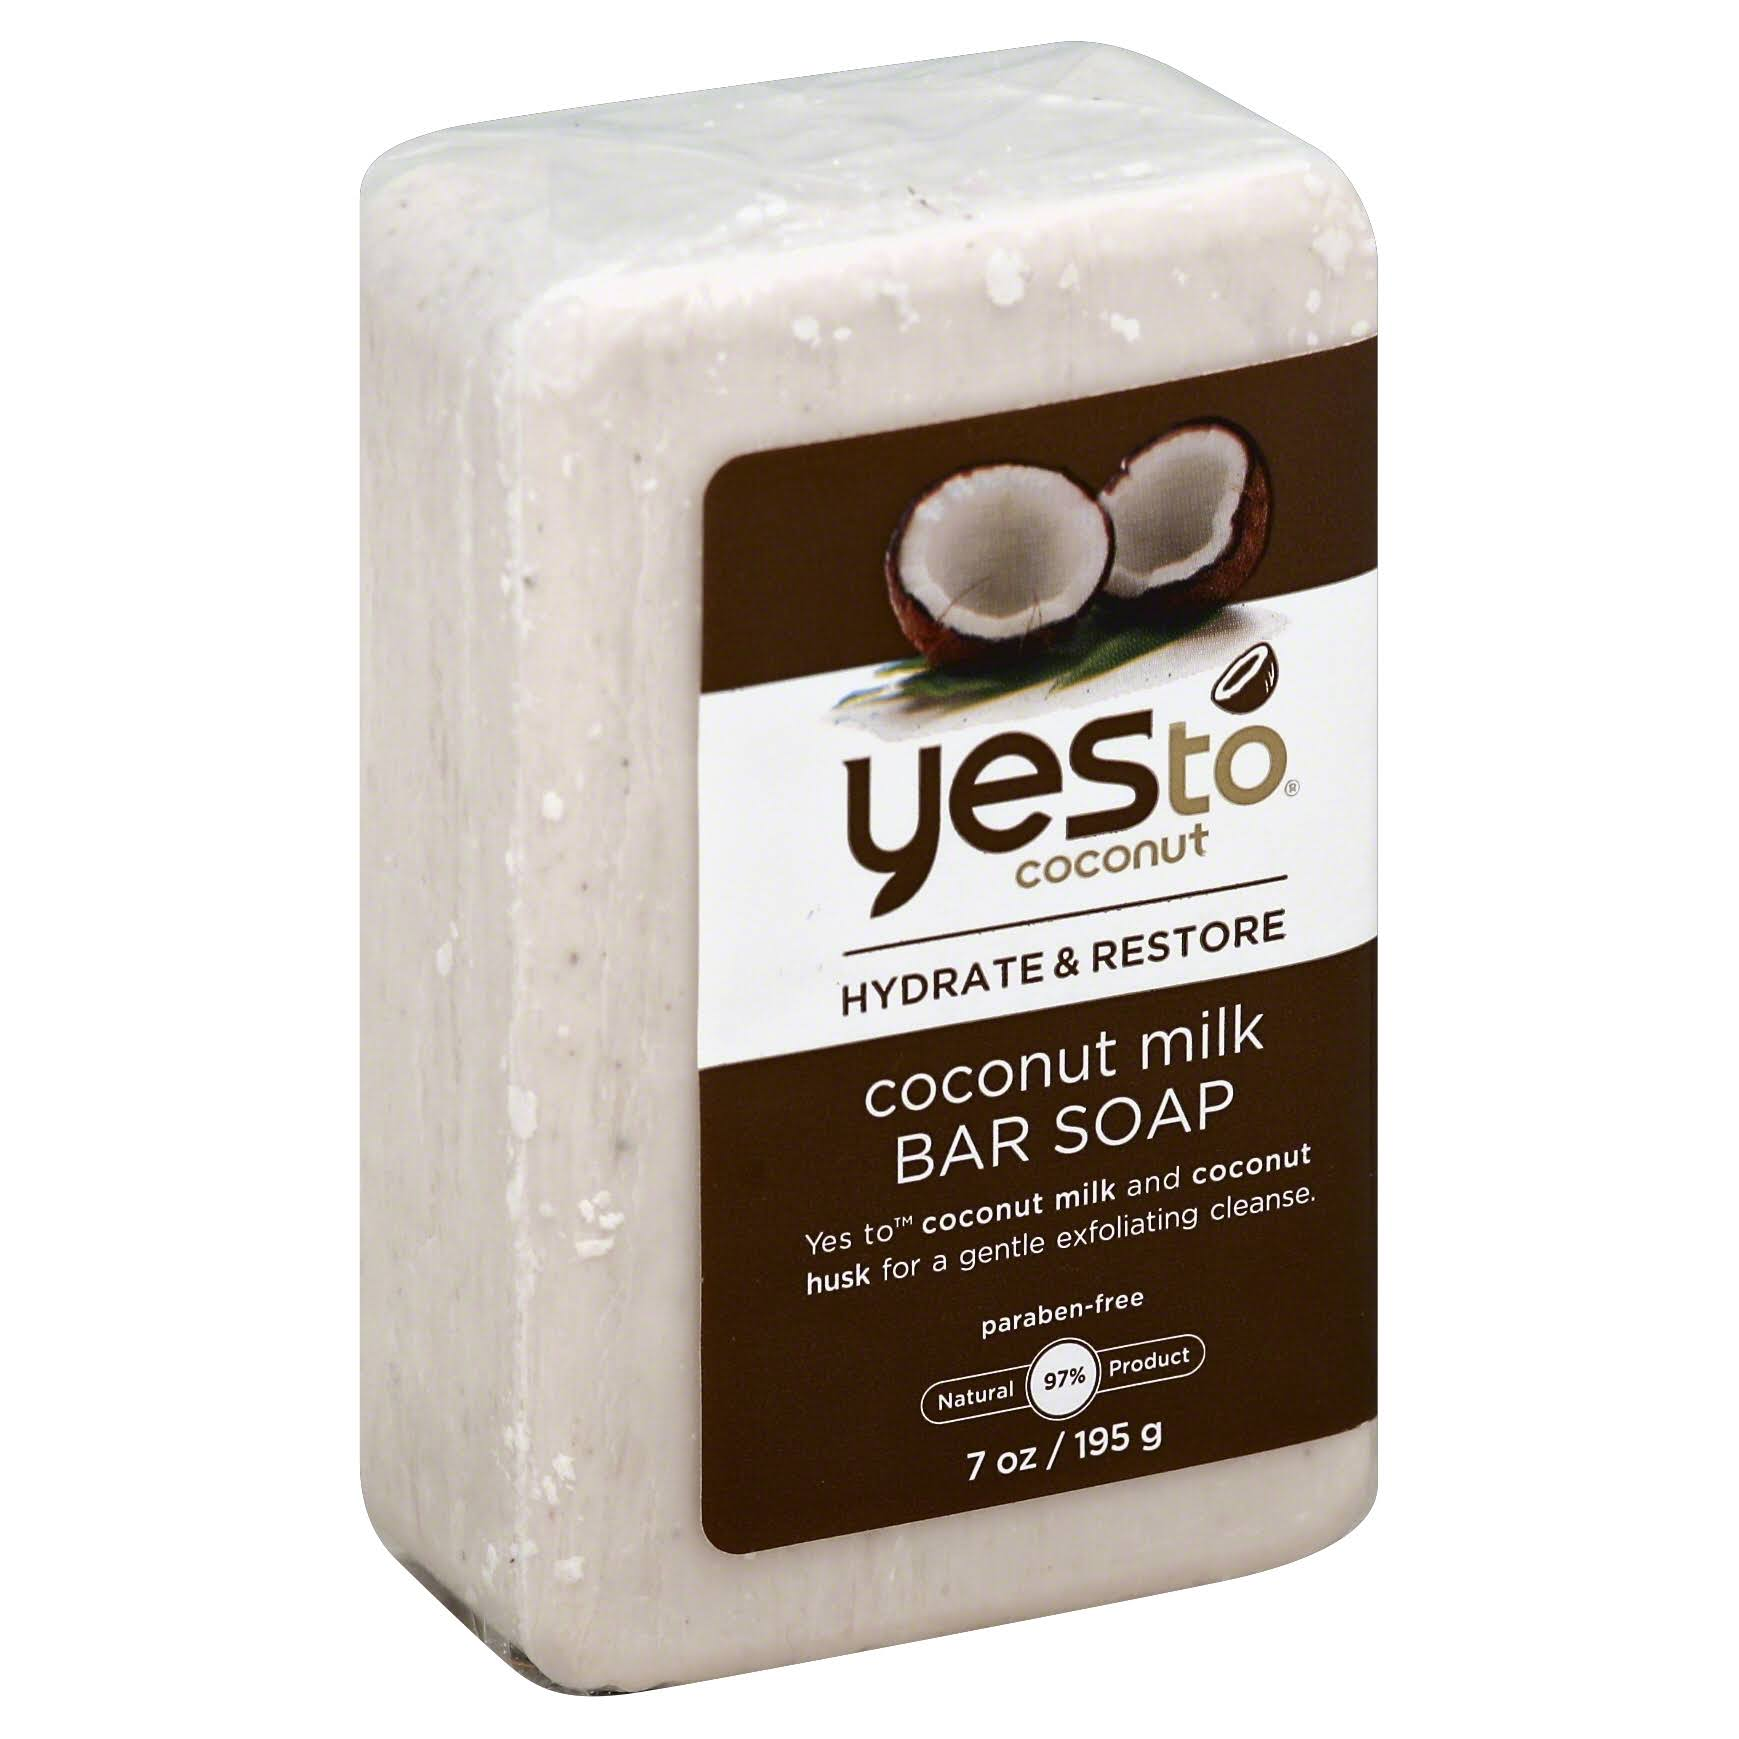 Yes to Coconut Hydrate and Restore Milk Bar Soap - Coconut, 210ml